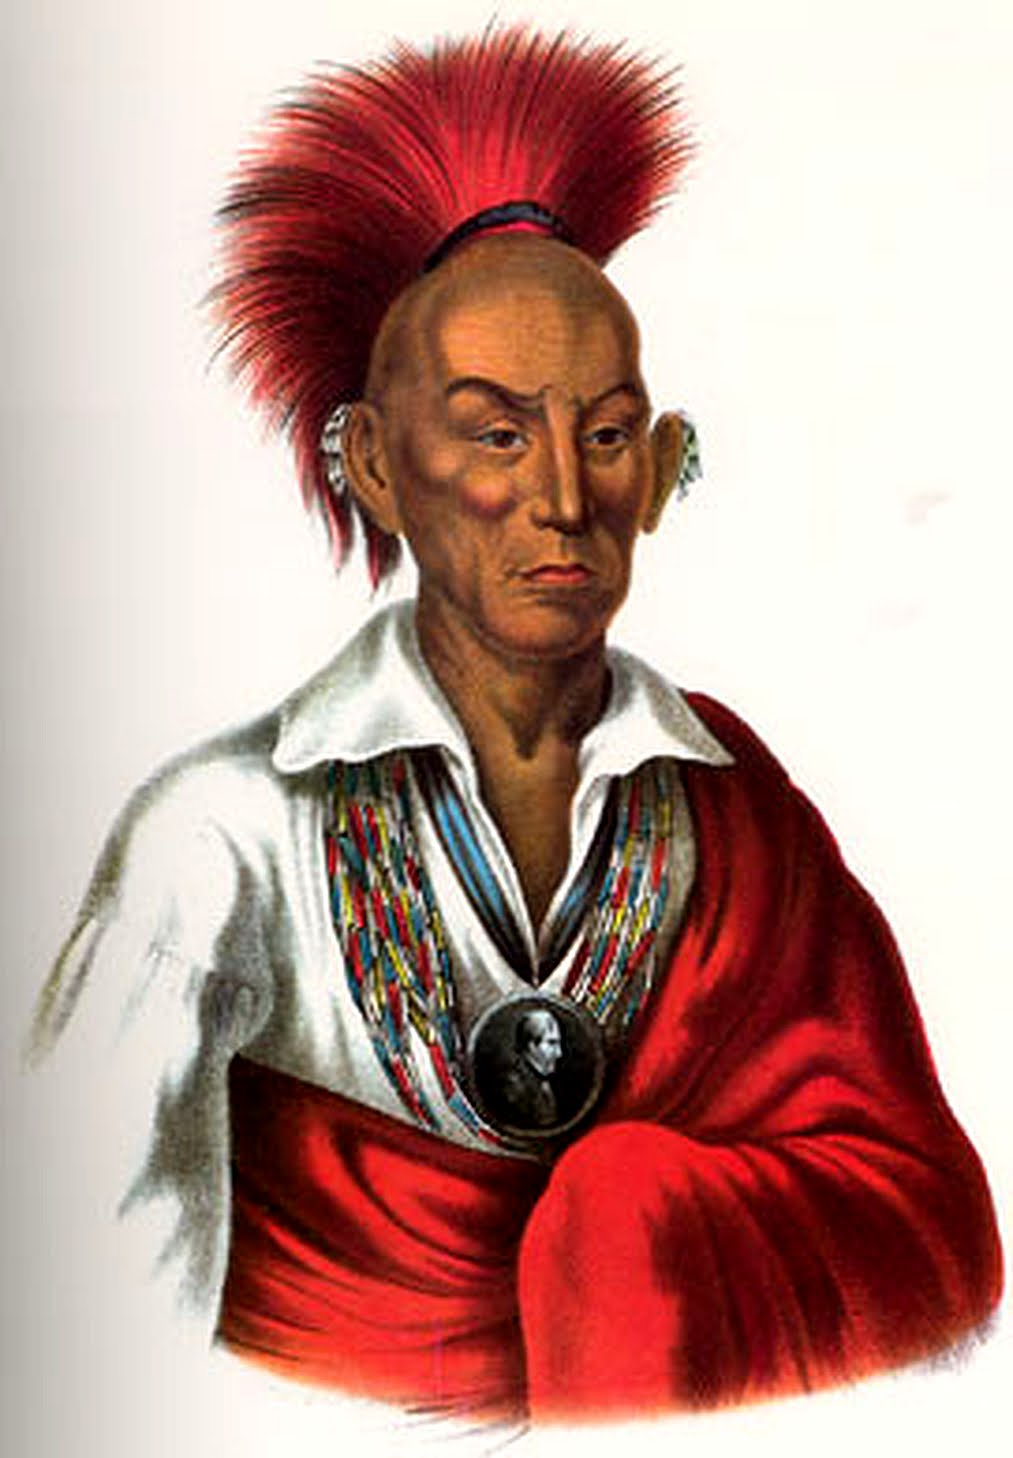 Sauk Chief Makataimeshekiakiah (Chief Black Hawk), painted 1837 and published in History of the Indian Tribes of North America -- a three-volume collection of Native American biographies and accompanying lithograph portraits originally published in the United States from 1836 to 1844 by Thomas McKenney and James Hall. The majority of the portraits were first painted in oil by Charles Bird King. McKenney was working as the US Superintendent of Indian Trade and would head the Office of Indian Affairs, both then within the War Department.